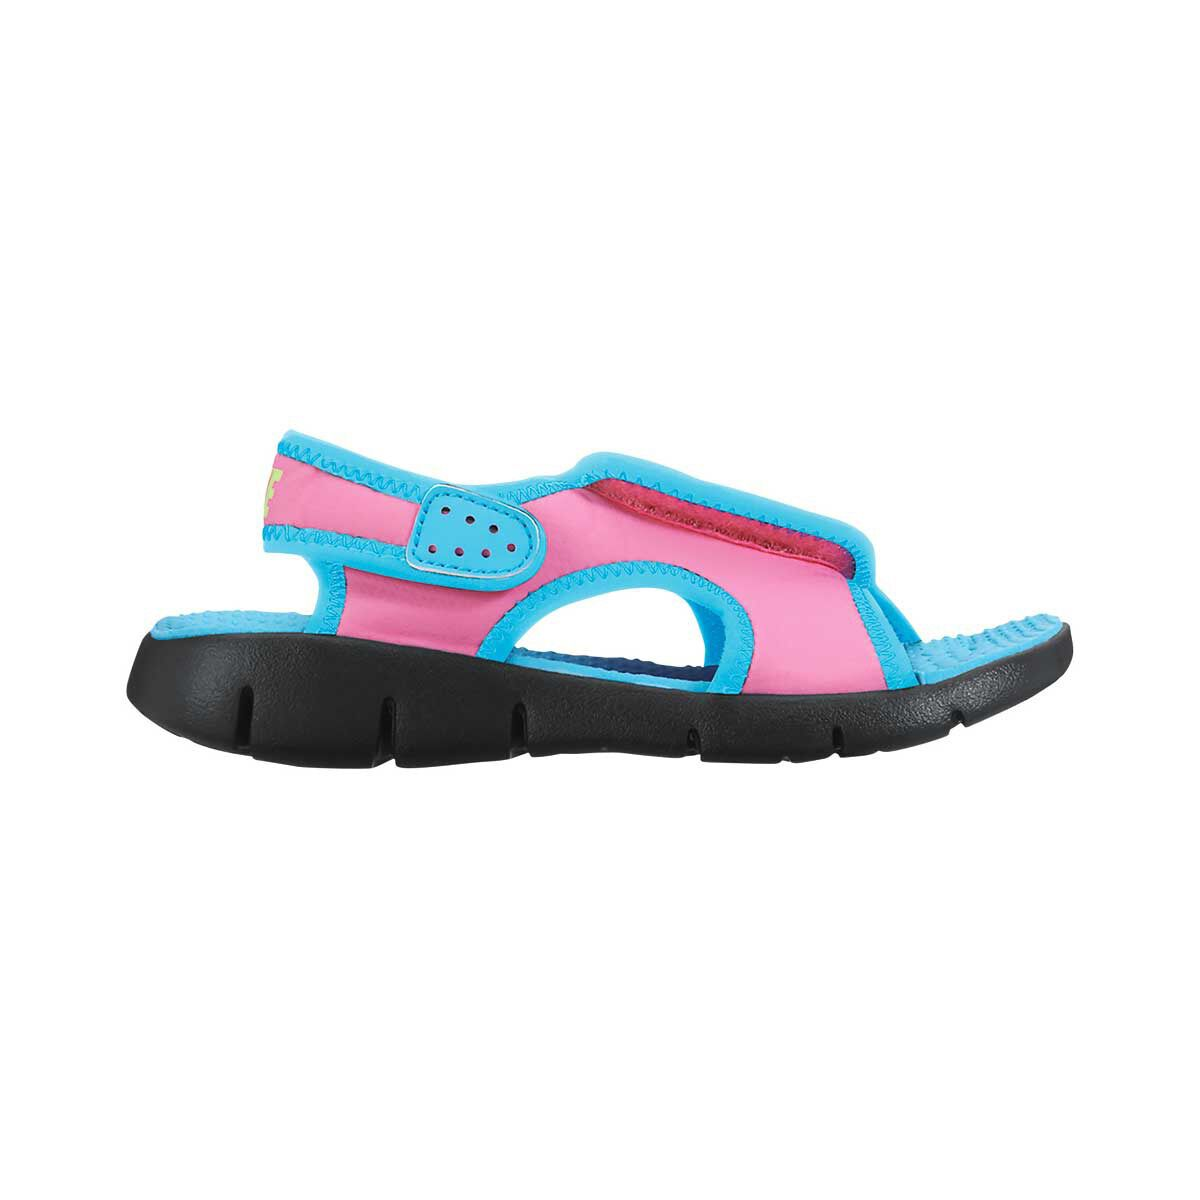 aa137e014c15 coupon code for nike sunray adjustable 4 junior girls sandals pink blue us  13 pink blue